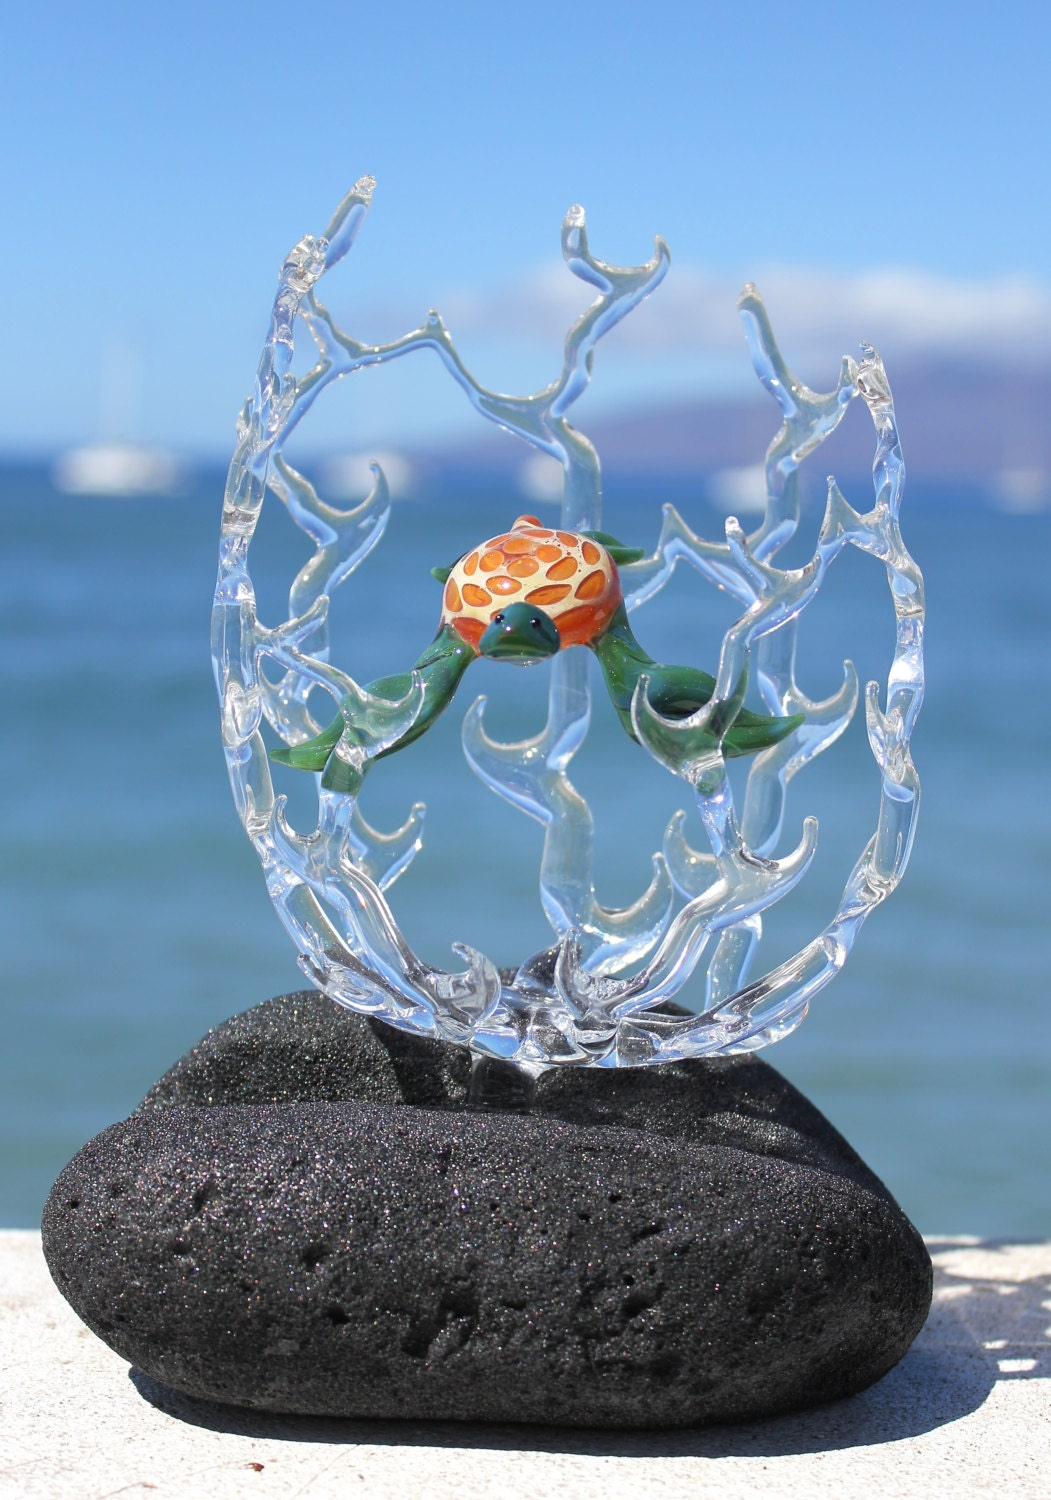 Hawaiian Sea Turtle In Coral Glass Sculpture By Mauigreenstone